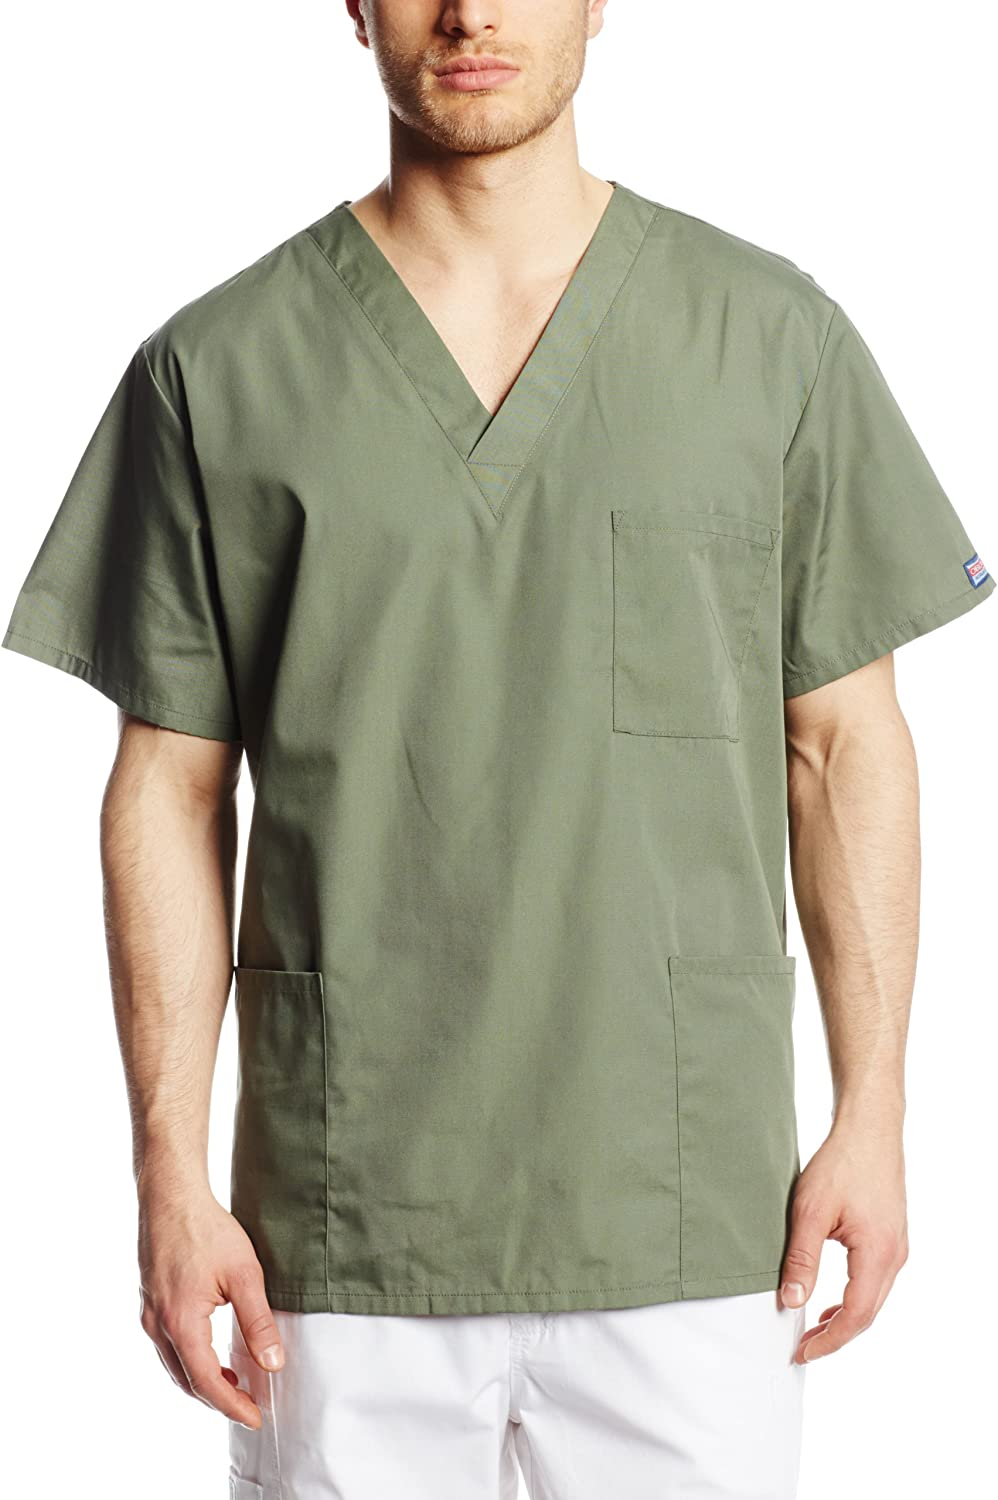 Cherokee Big and Tall Originals Unisex V-Neck Scrubs Top, Olive, XX-Large: Medical Scrubs Shirts: Clothing